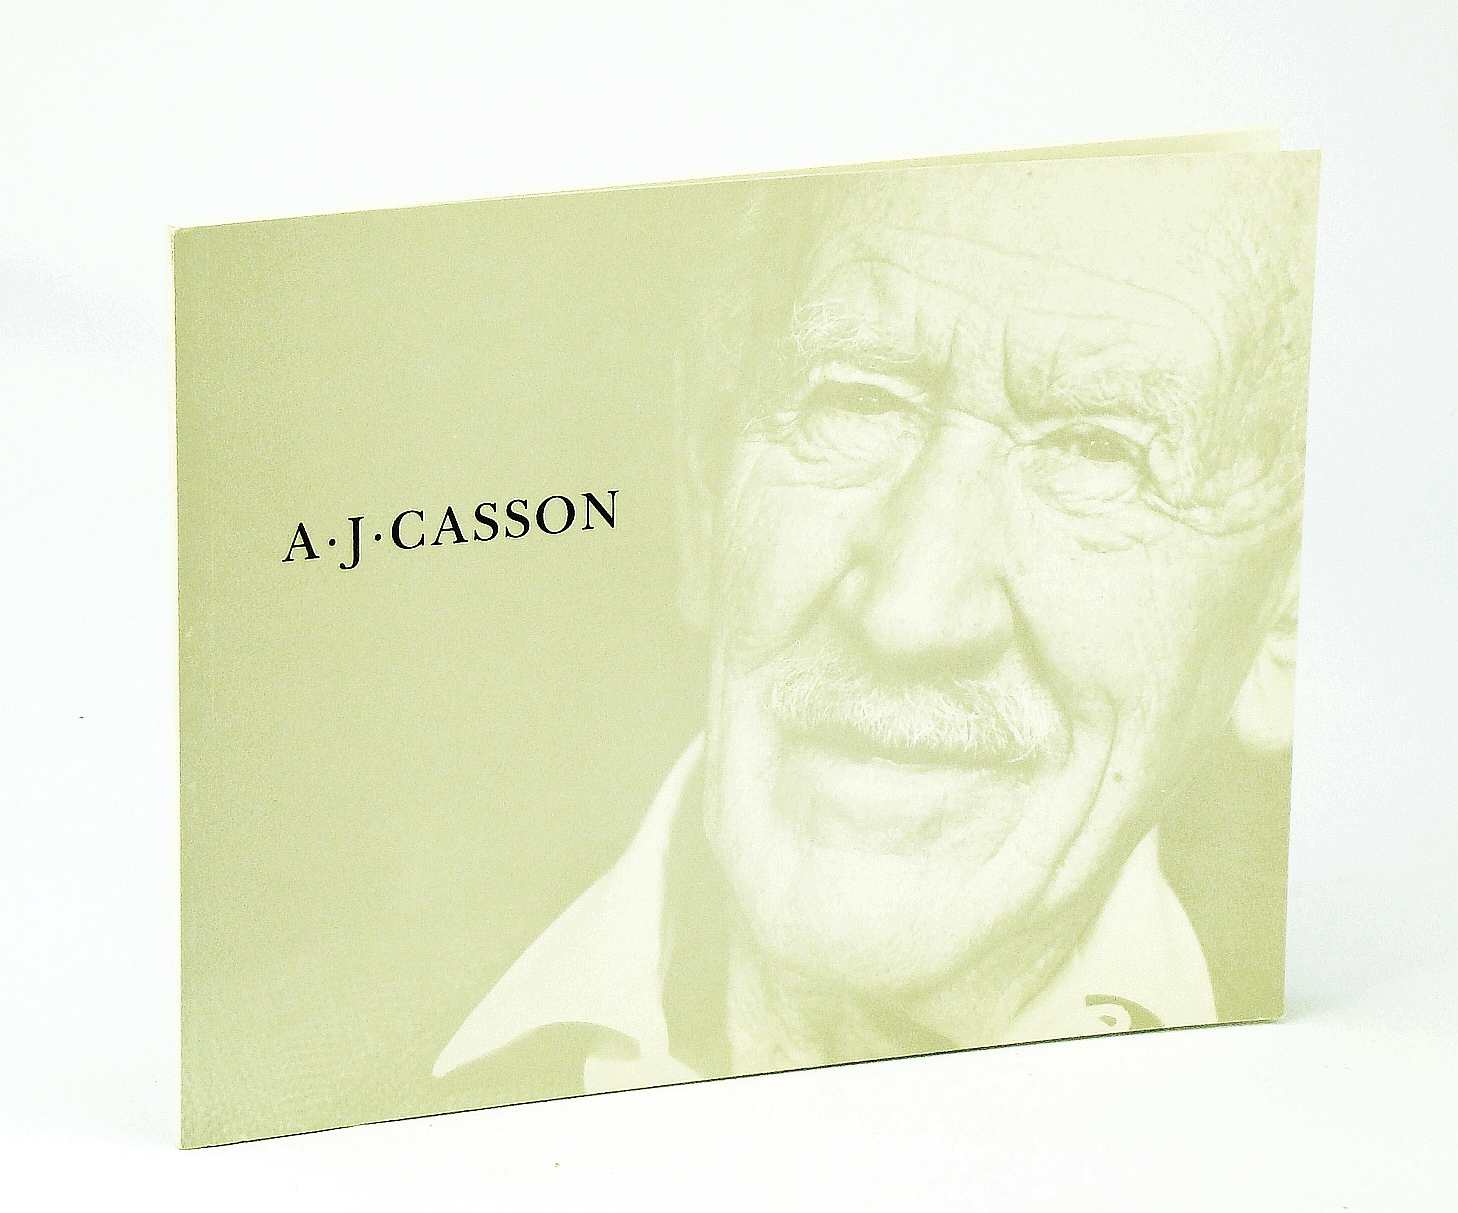 Image for A. J. Casson. An Exhibition Organized By the Art Gallery of Windor to Mark A. J. Casson's 80th Birthday